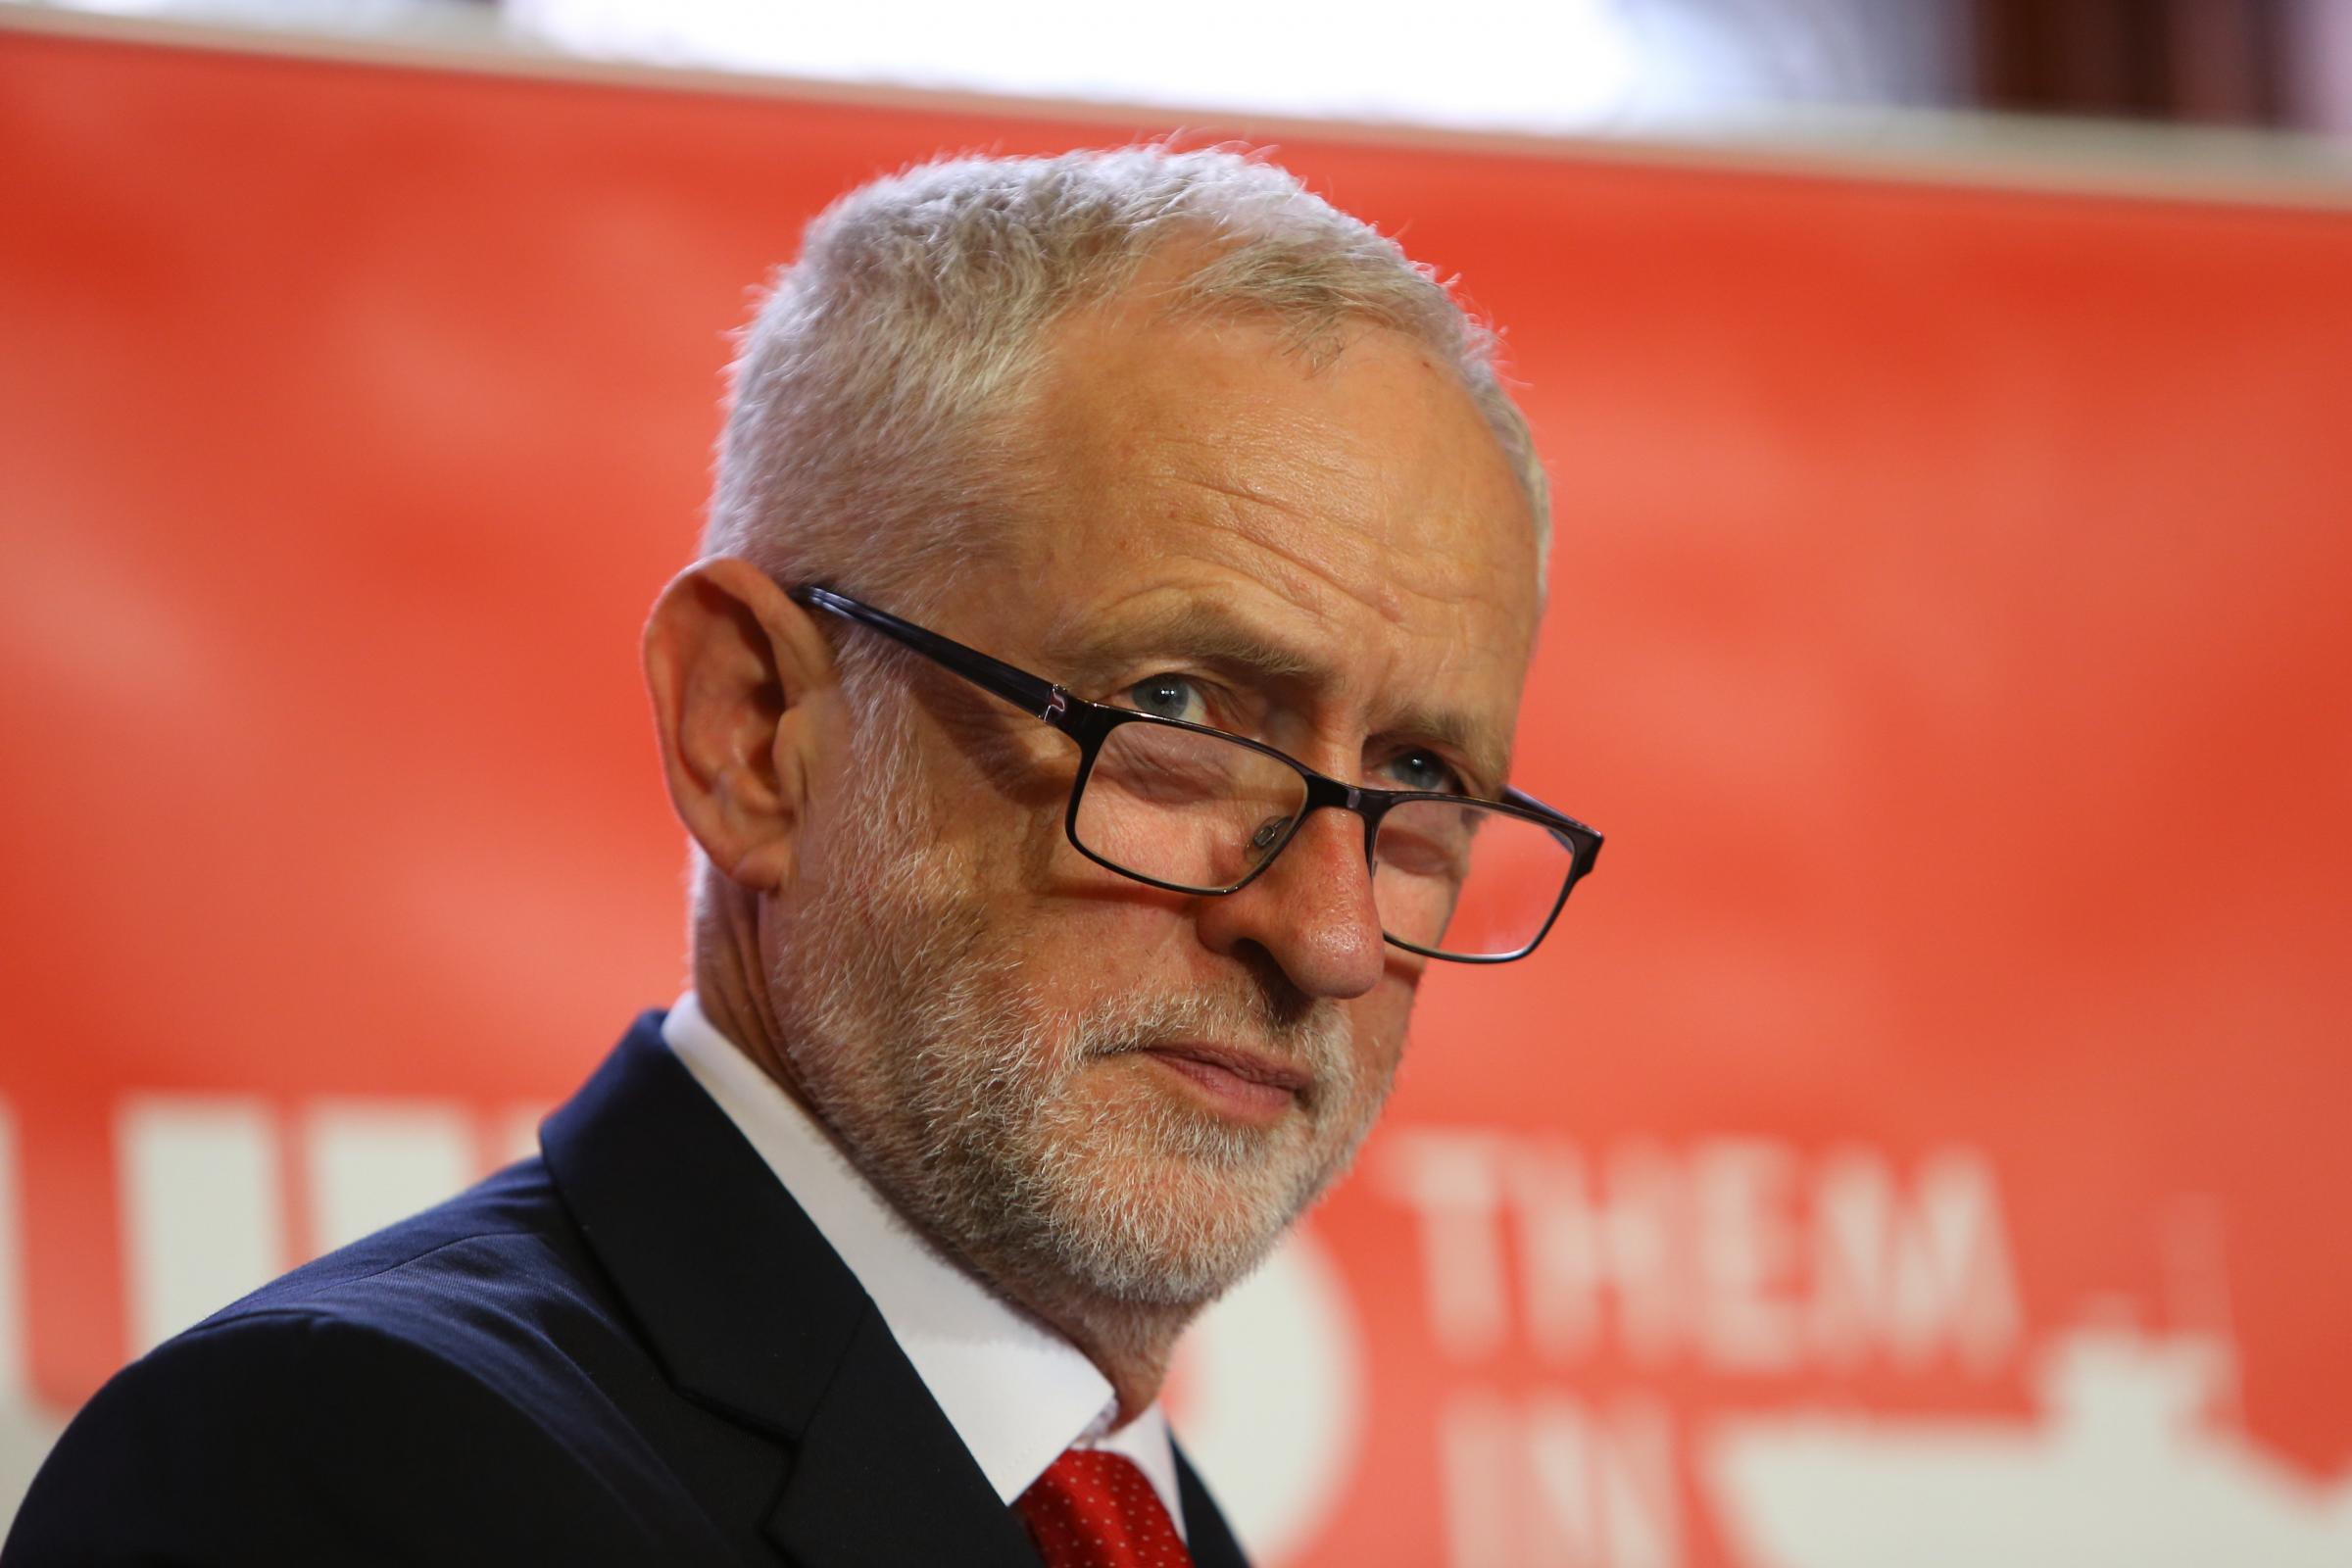 Brexit Bill rebellion: Corbyn facing Labour MPs' revolt over EEA membership